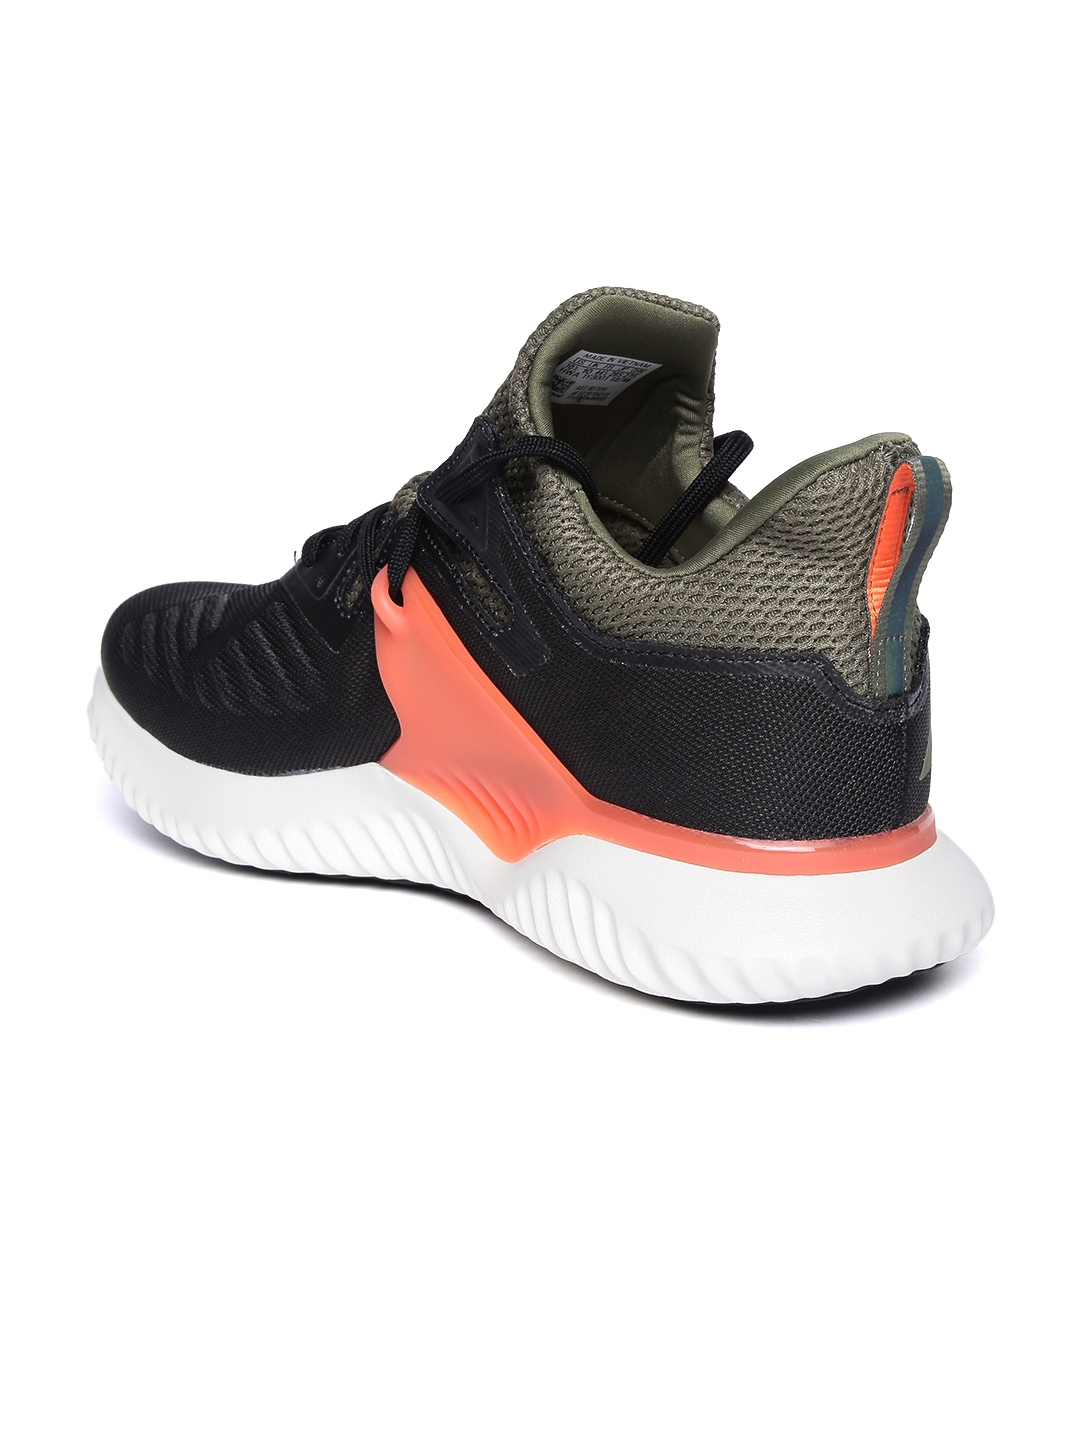 287e11a2a Buy ADIDAS Men Black ALPHABOUNCE BEYOND 2 M Running Shoes - Sports ...